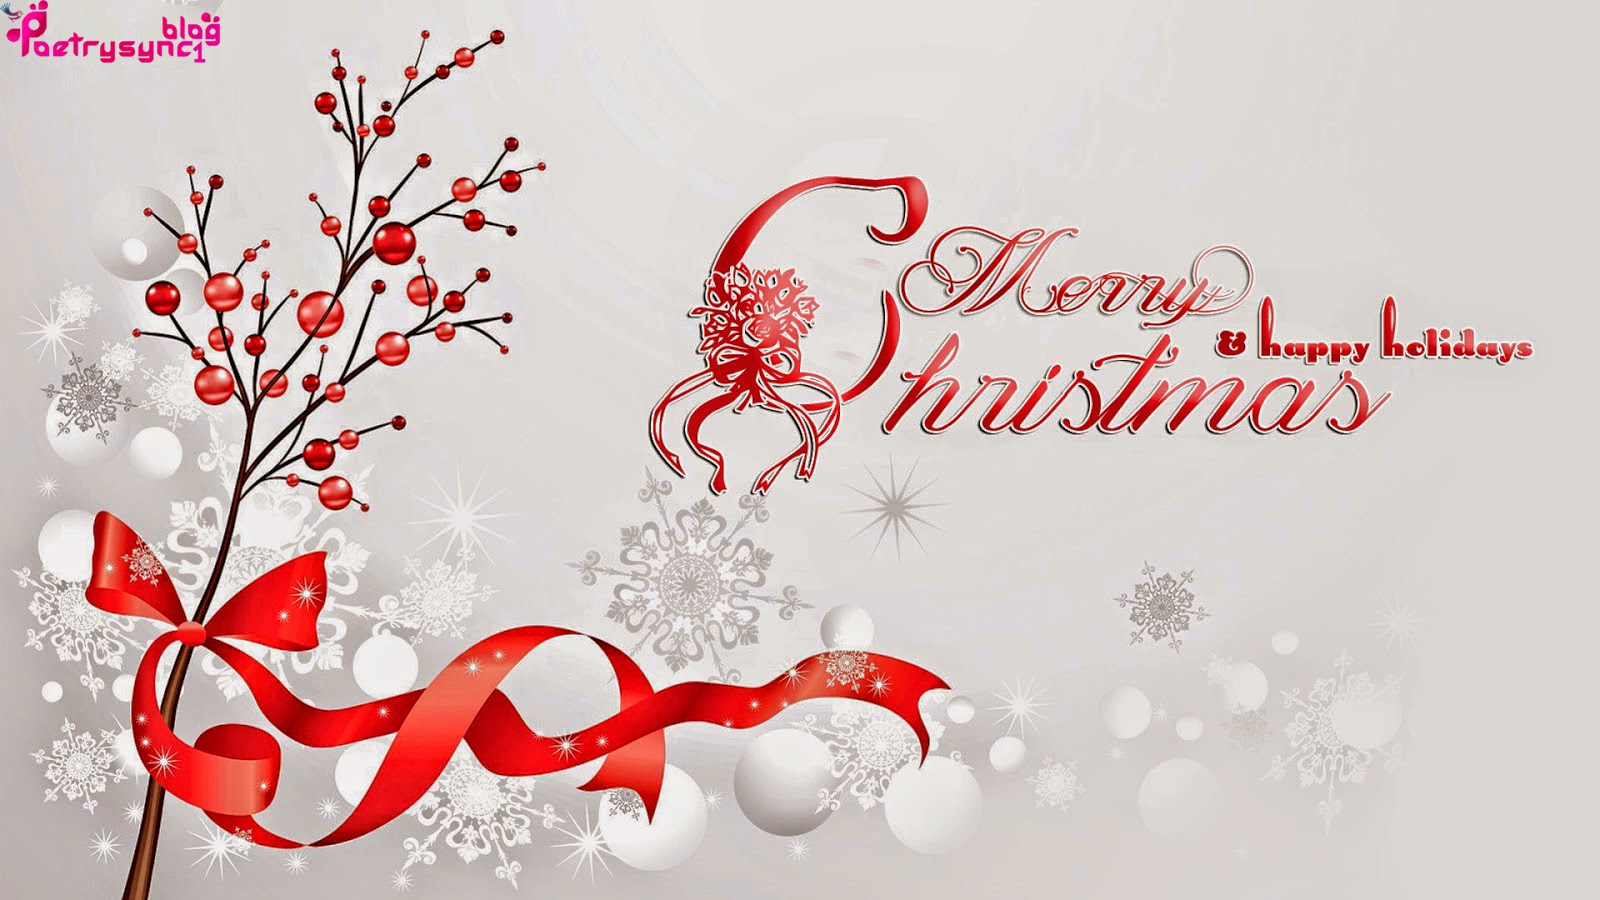 Holiday Wishes Quotes Merry Christmas And Happy Holidays Wishes Pictures With Quotes